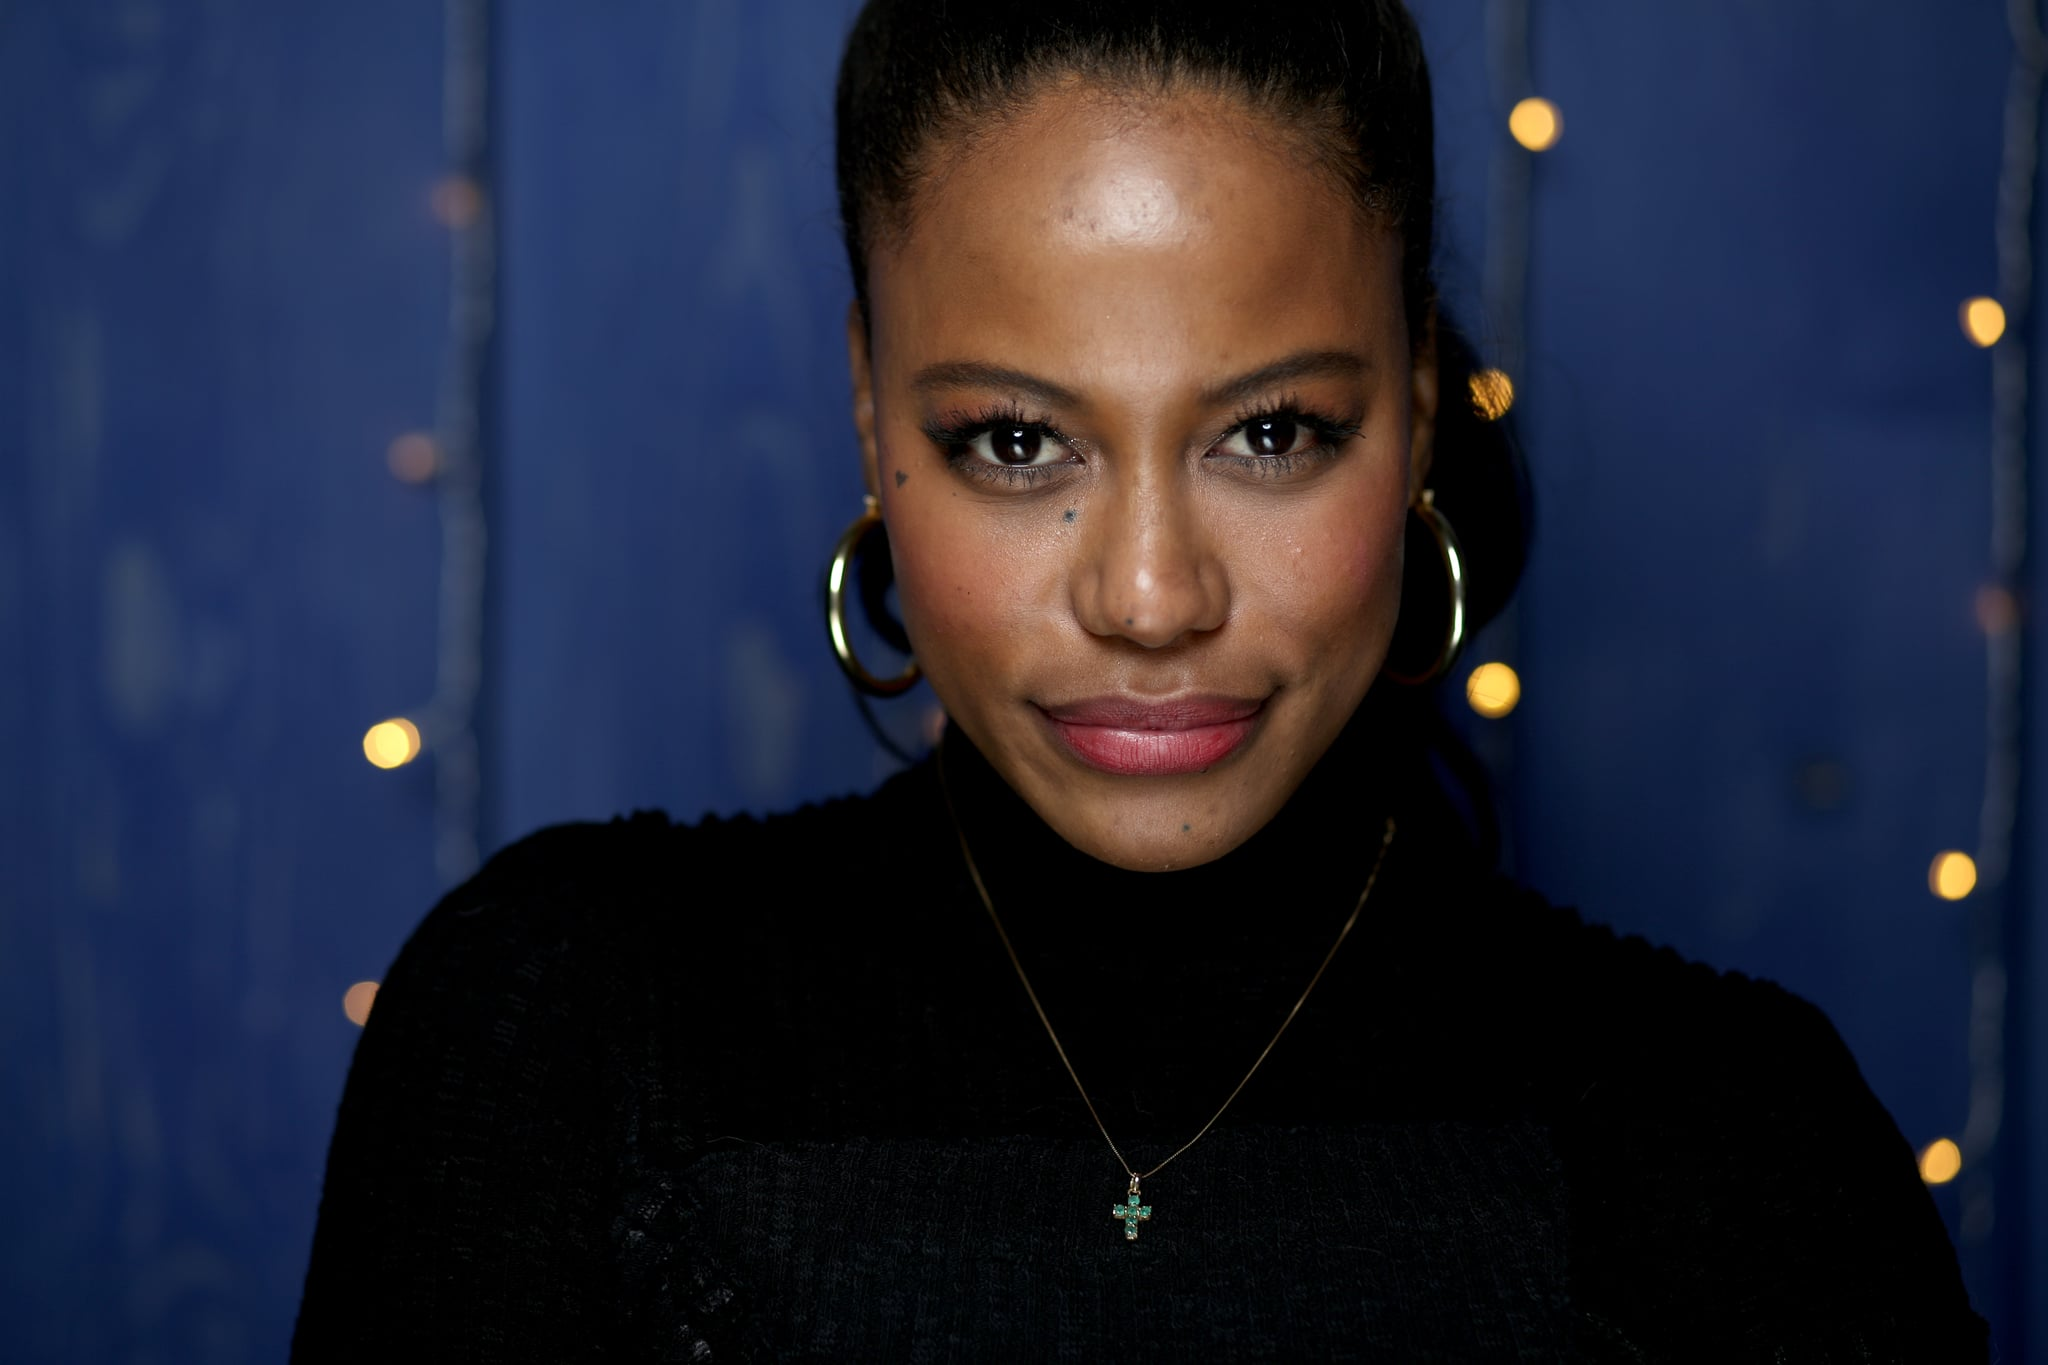 PARK CITY, UTAH - JANUARY 25: Taylour Paige of 'Zola' attends the IMDb Studio at Acura Festival Village on location at the 2020 Sundance Film Festival – Day 2 on January 25, 2020 in Park City, Utah. (Photo by Rich Polk/Getty Images for IMDb)